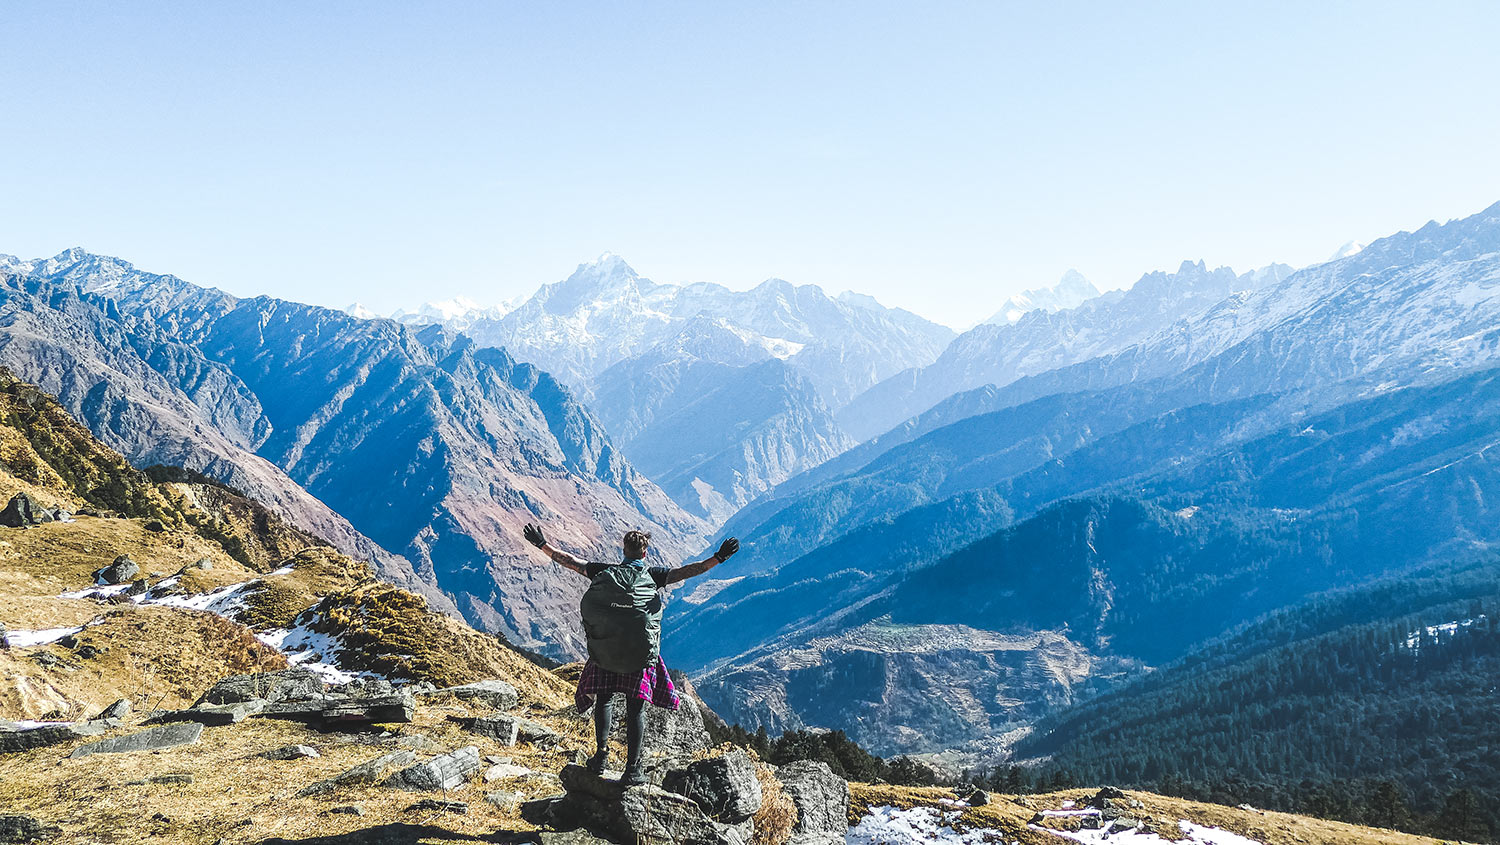 The best Himalayan travel adventure on earth: 3 day Kuari Pass Trek. A man holds his hands out embracing the Himalayan views with mountains in front of him